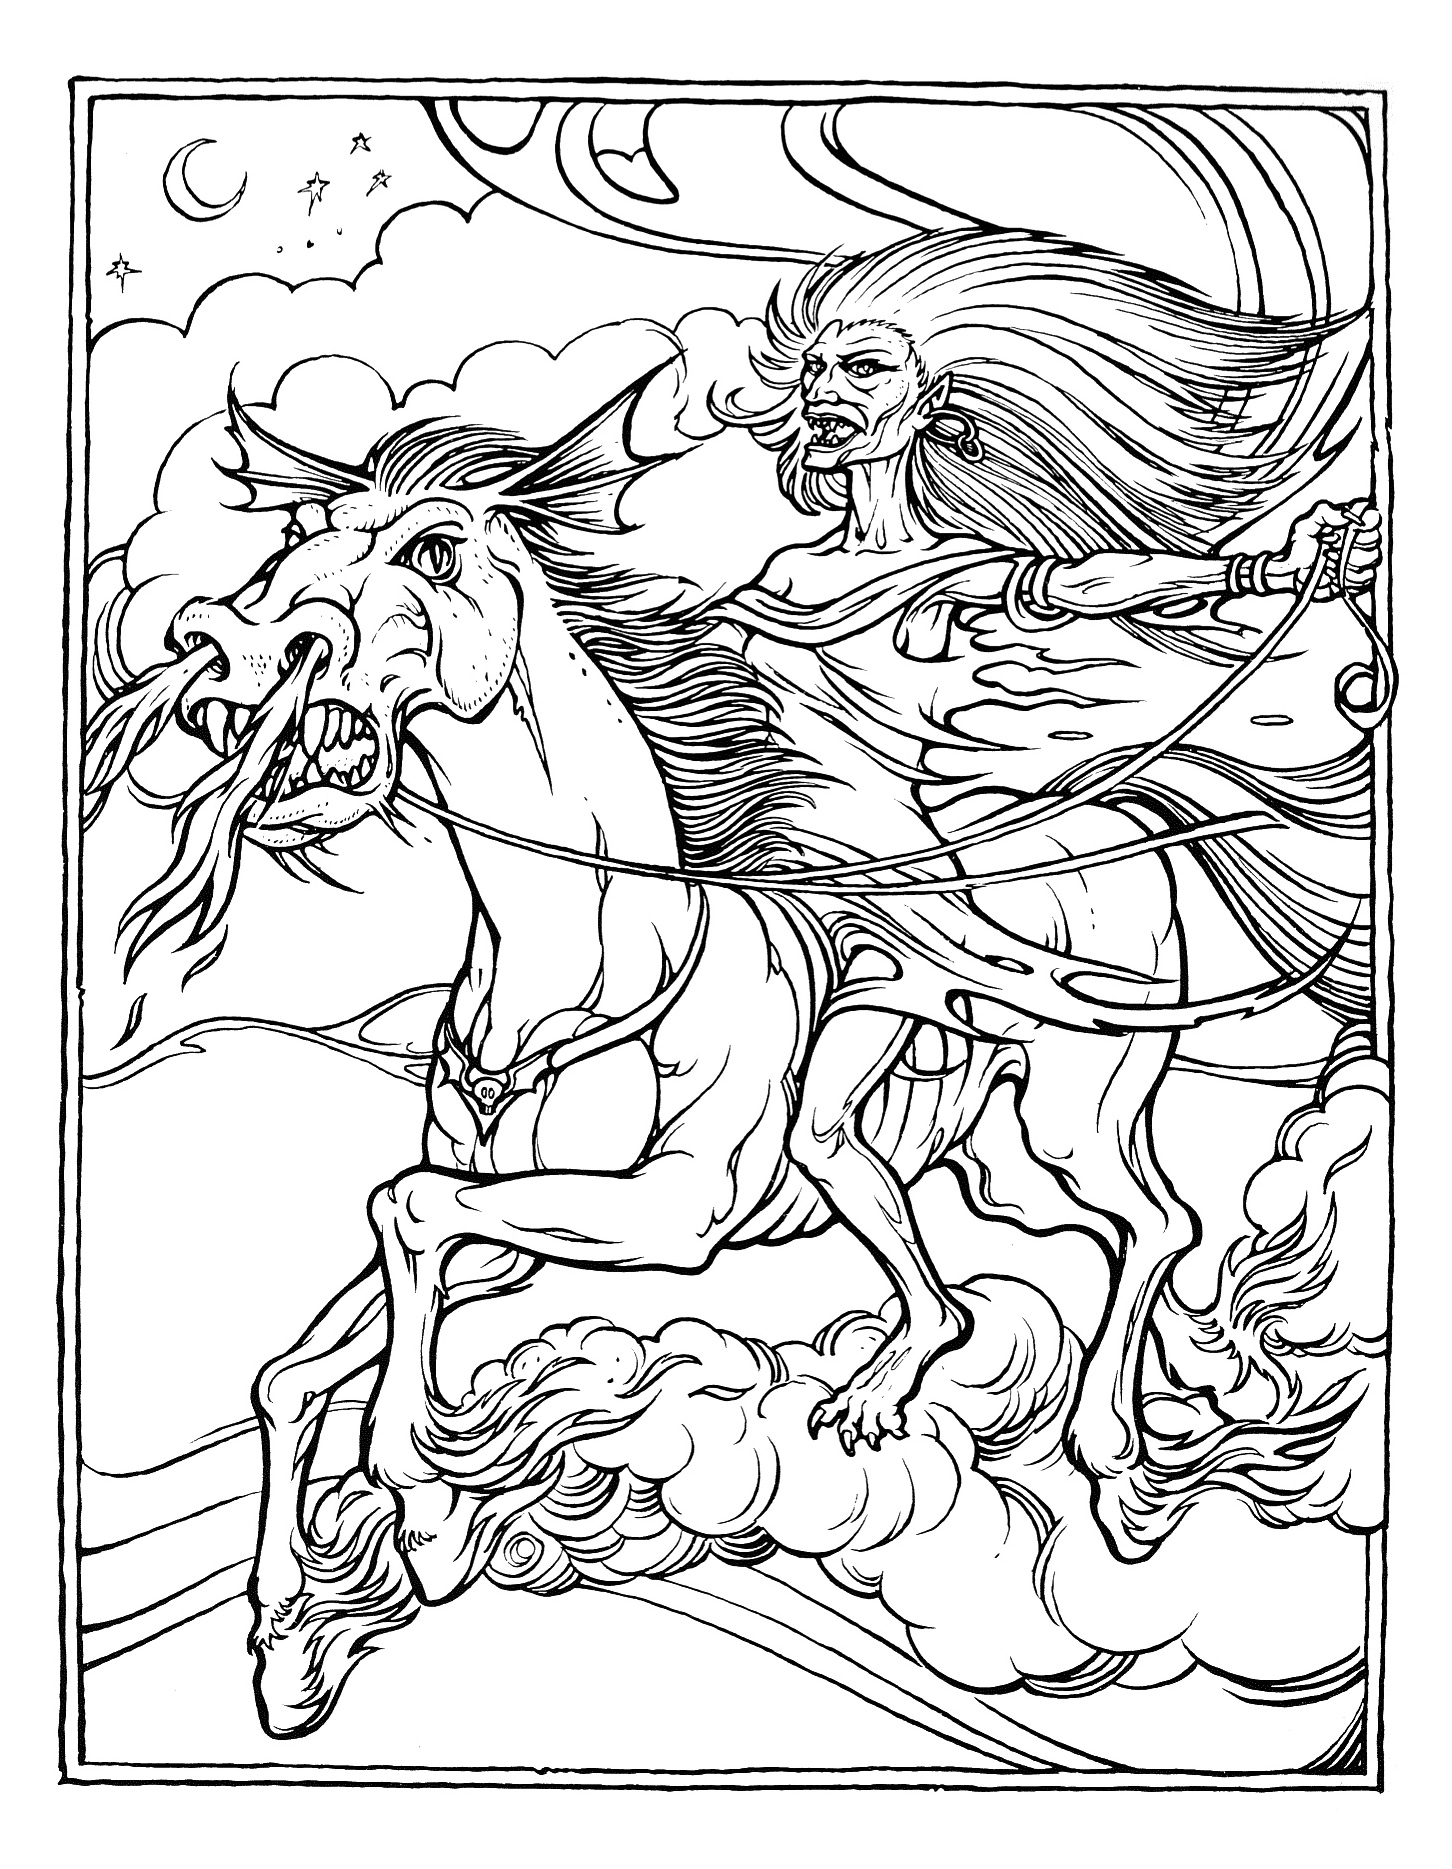 dragon printable coloring pages - dragon coloring pages 360coloringpages